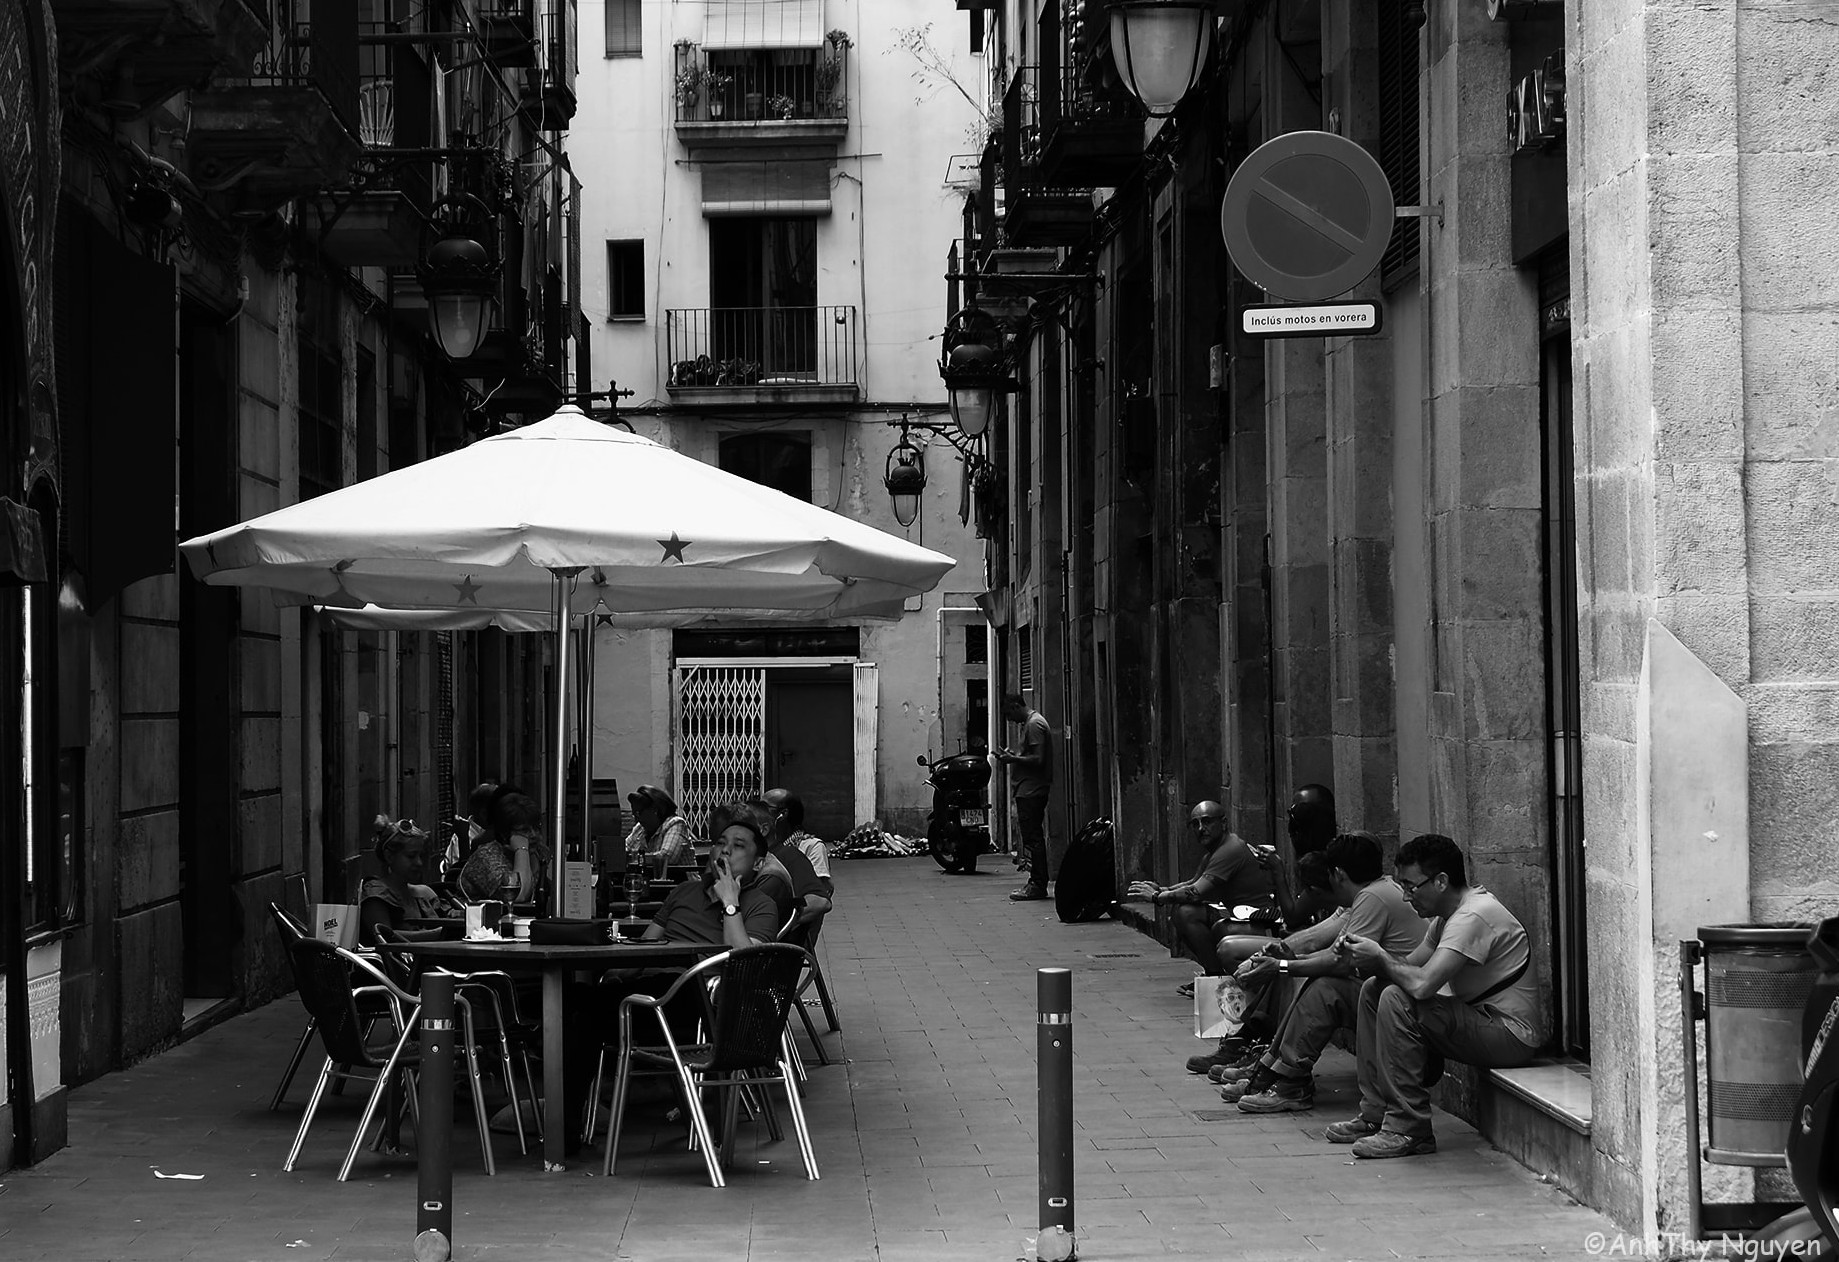 Barcelona travel photo in black and white